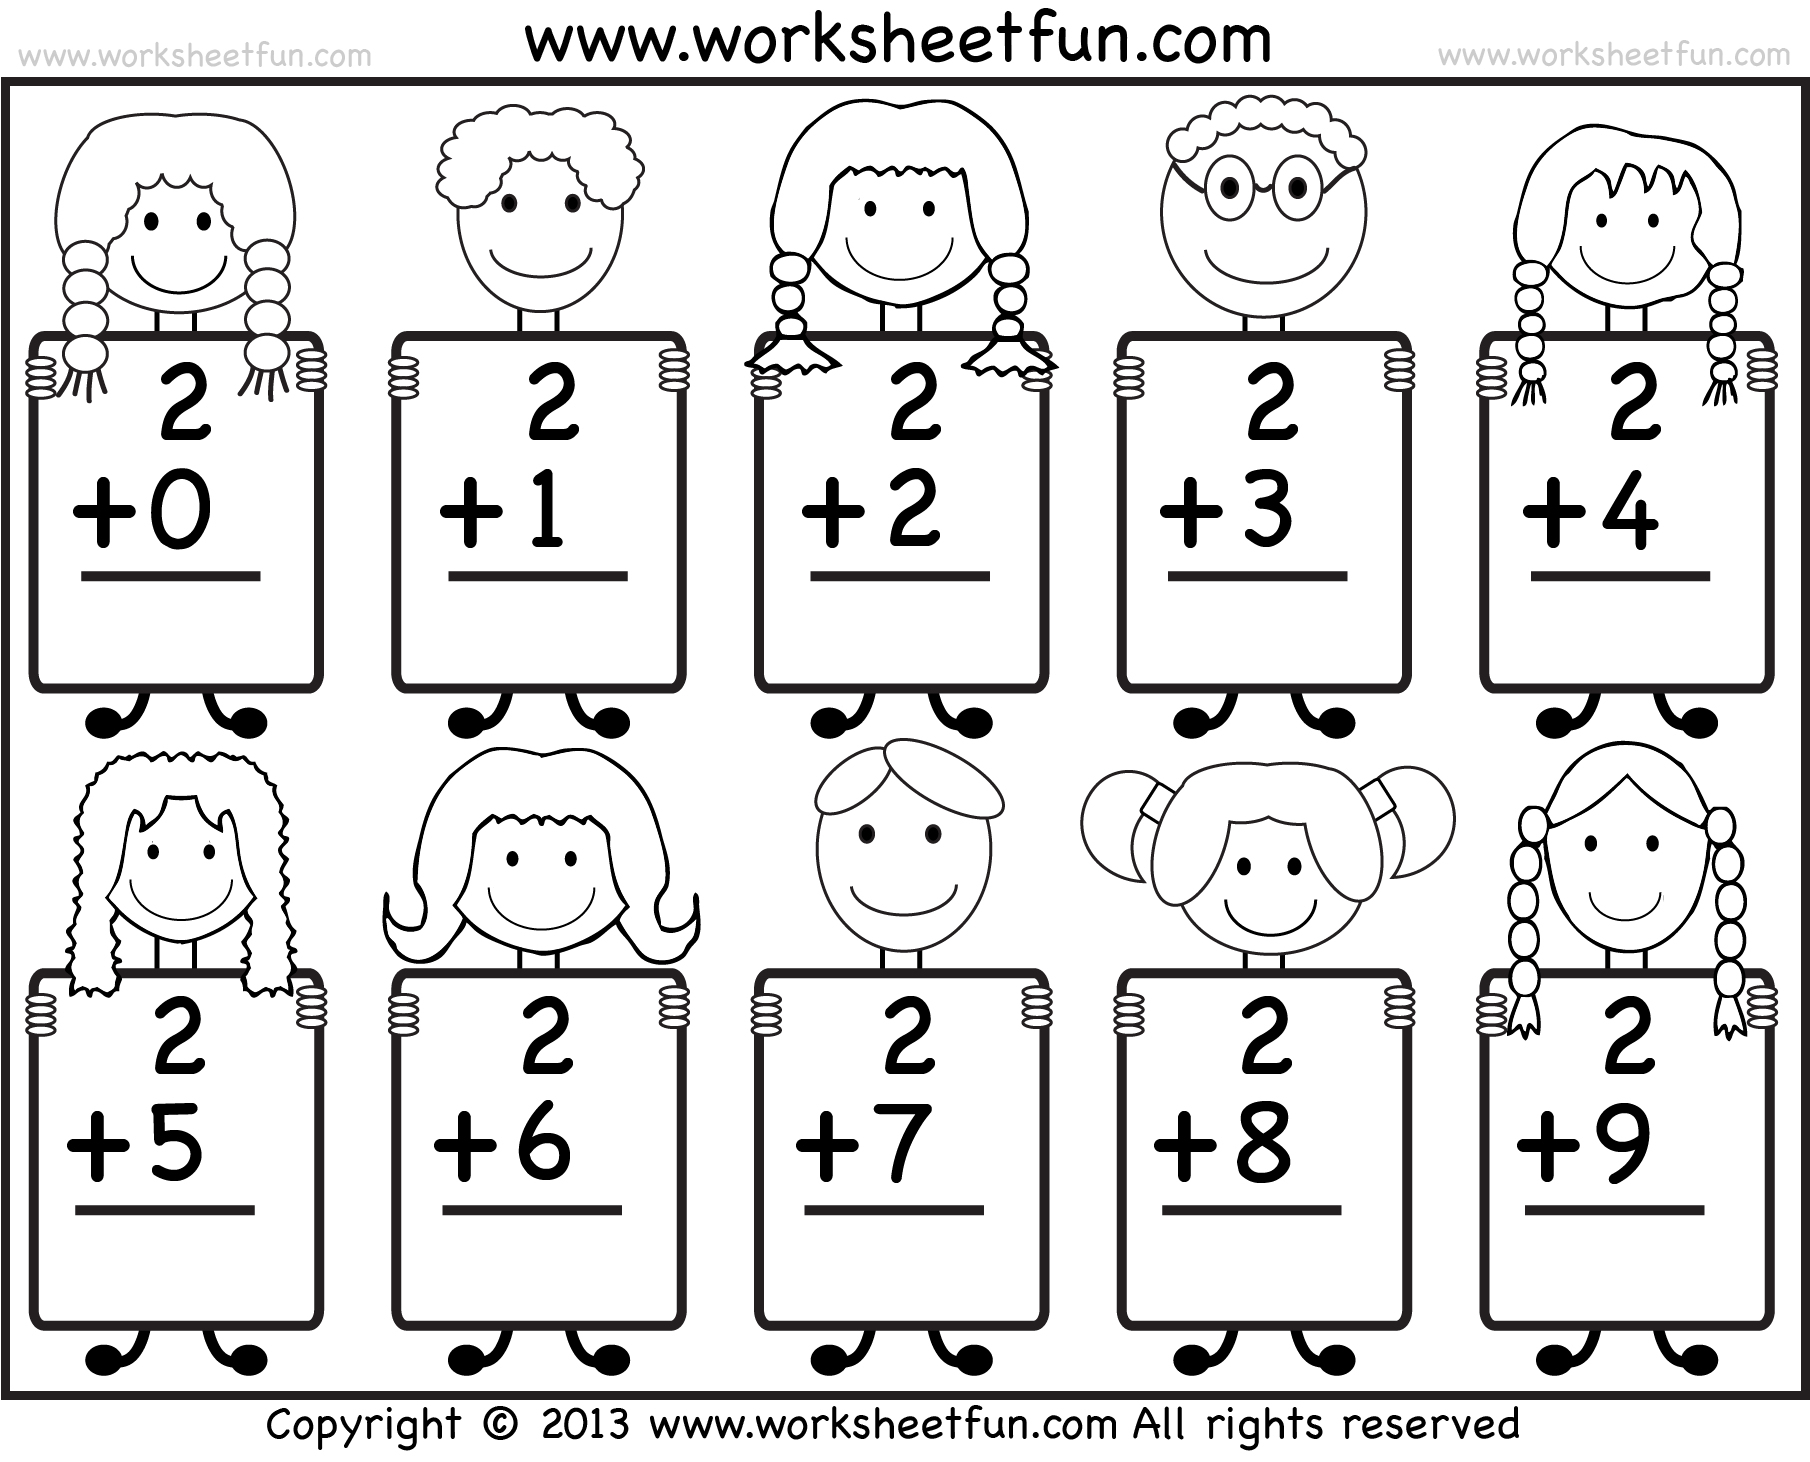 Free Printable Worksheets For Kindergarten – With 5Th Grade Math | Maths Worksheets For Kindergarten Printable